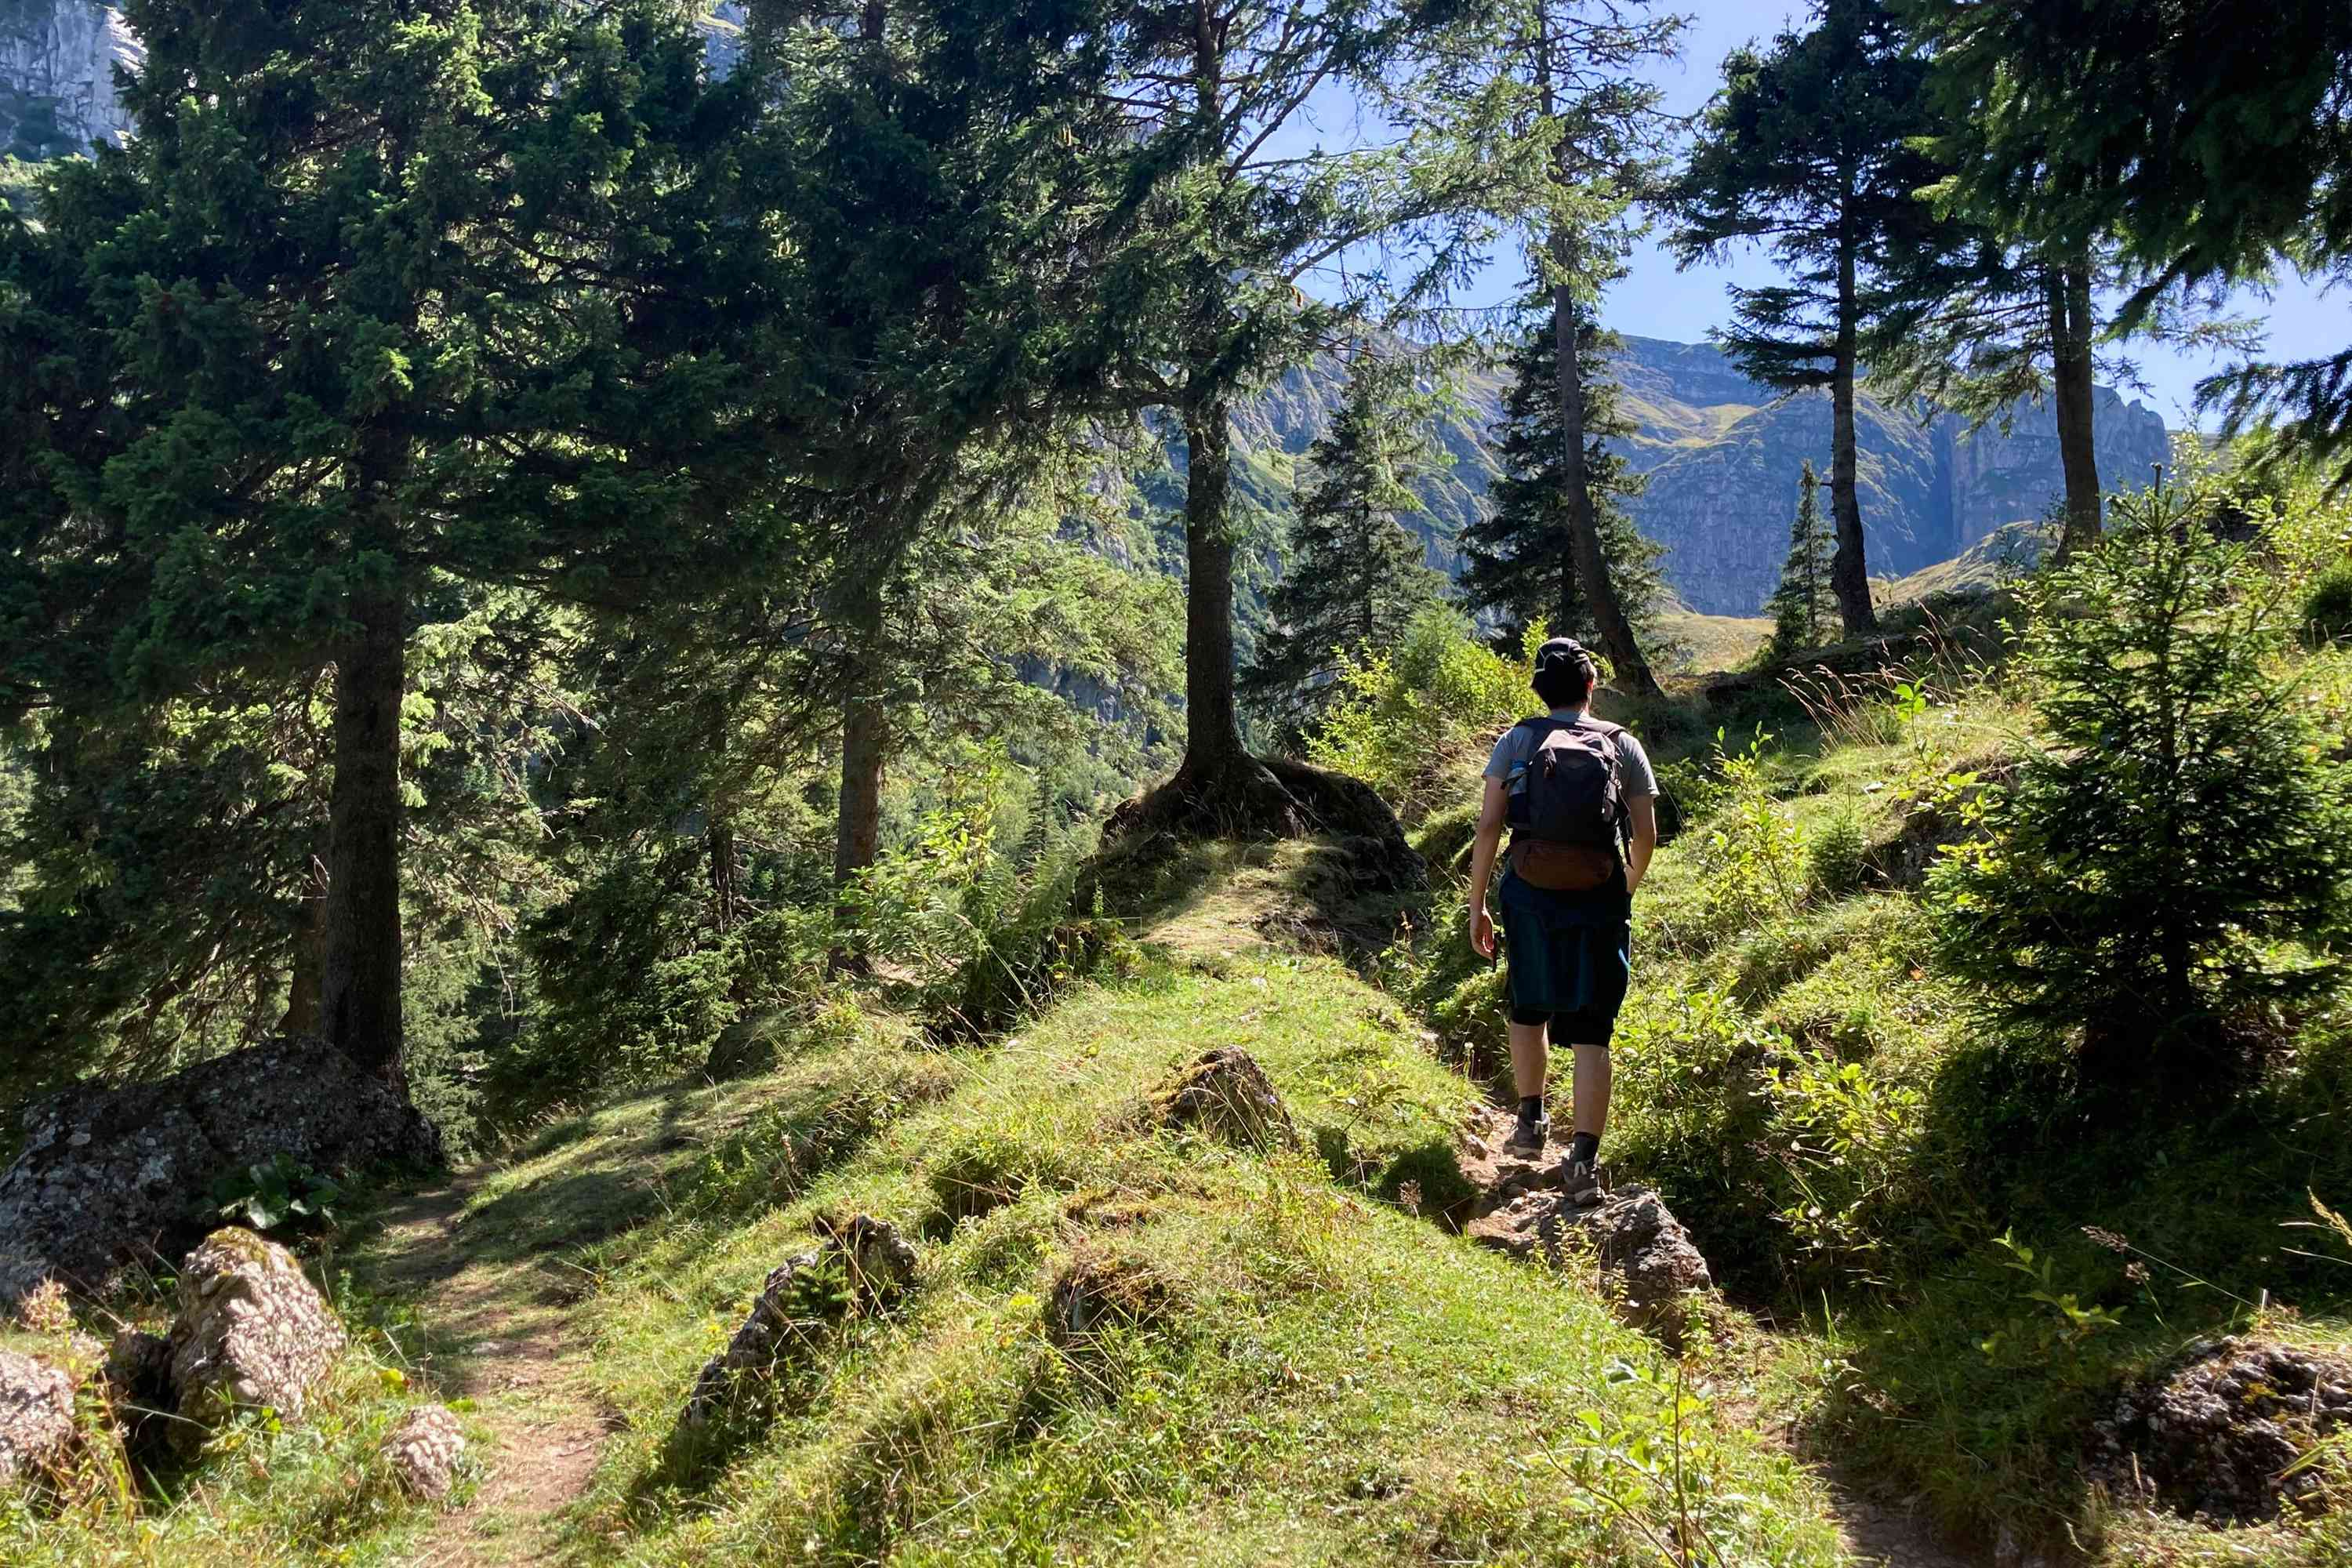 person hikes on rocky ledge in middle of mountainous forest